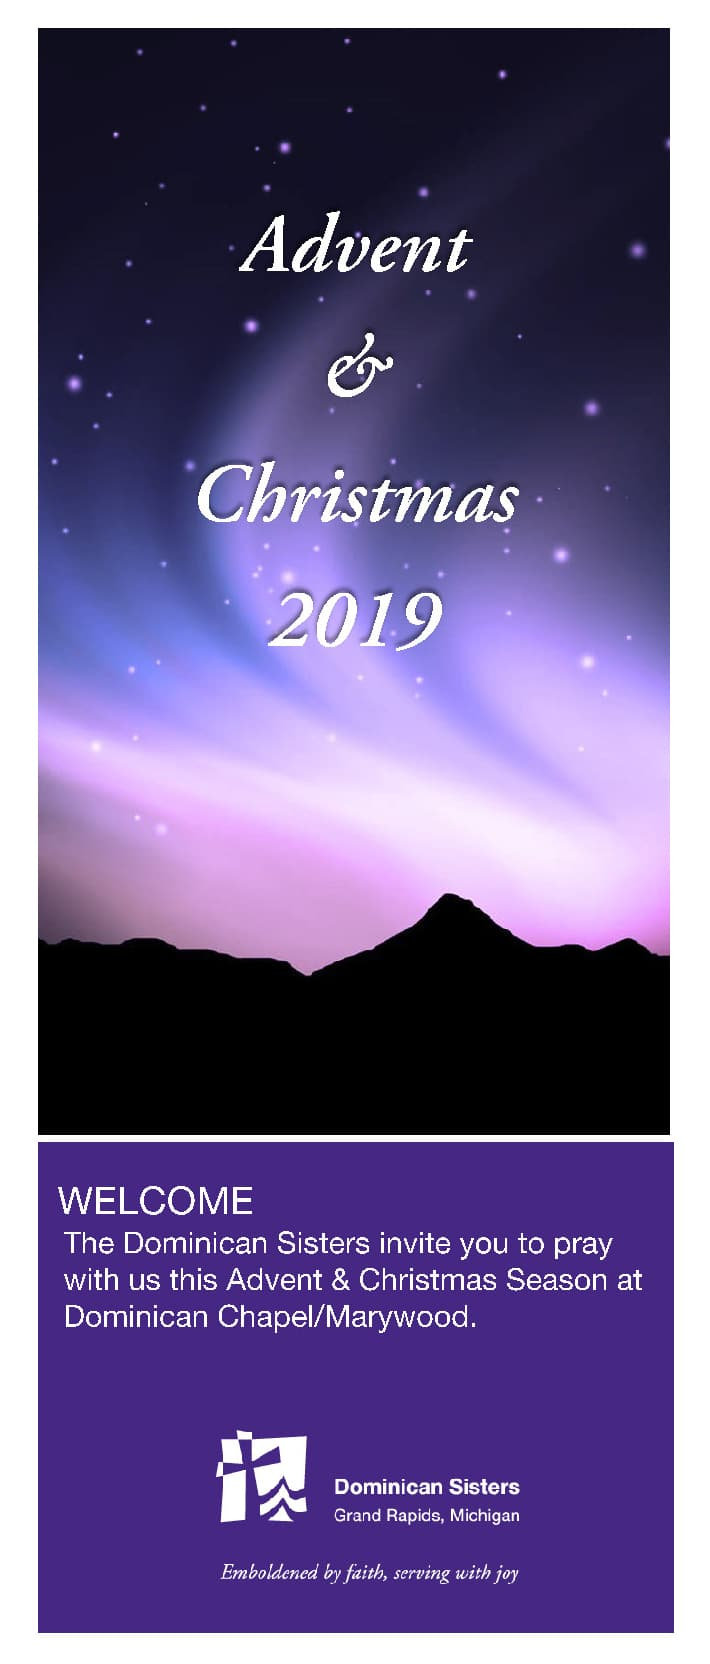 Advent Christ Brochure 2019 Cover